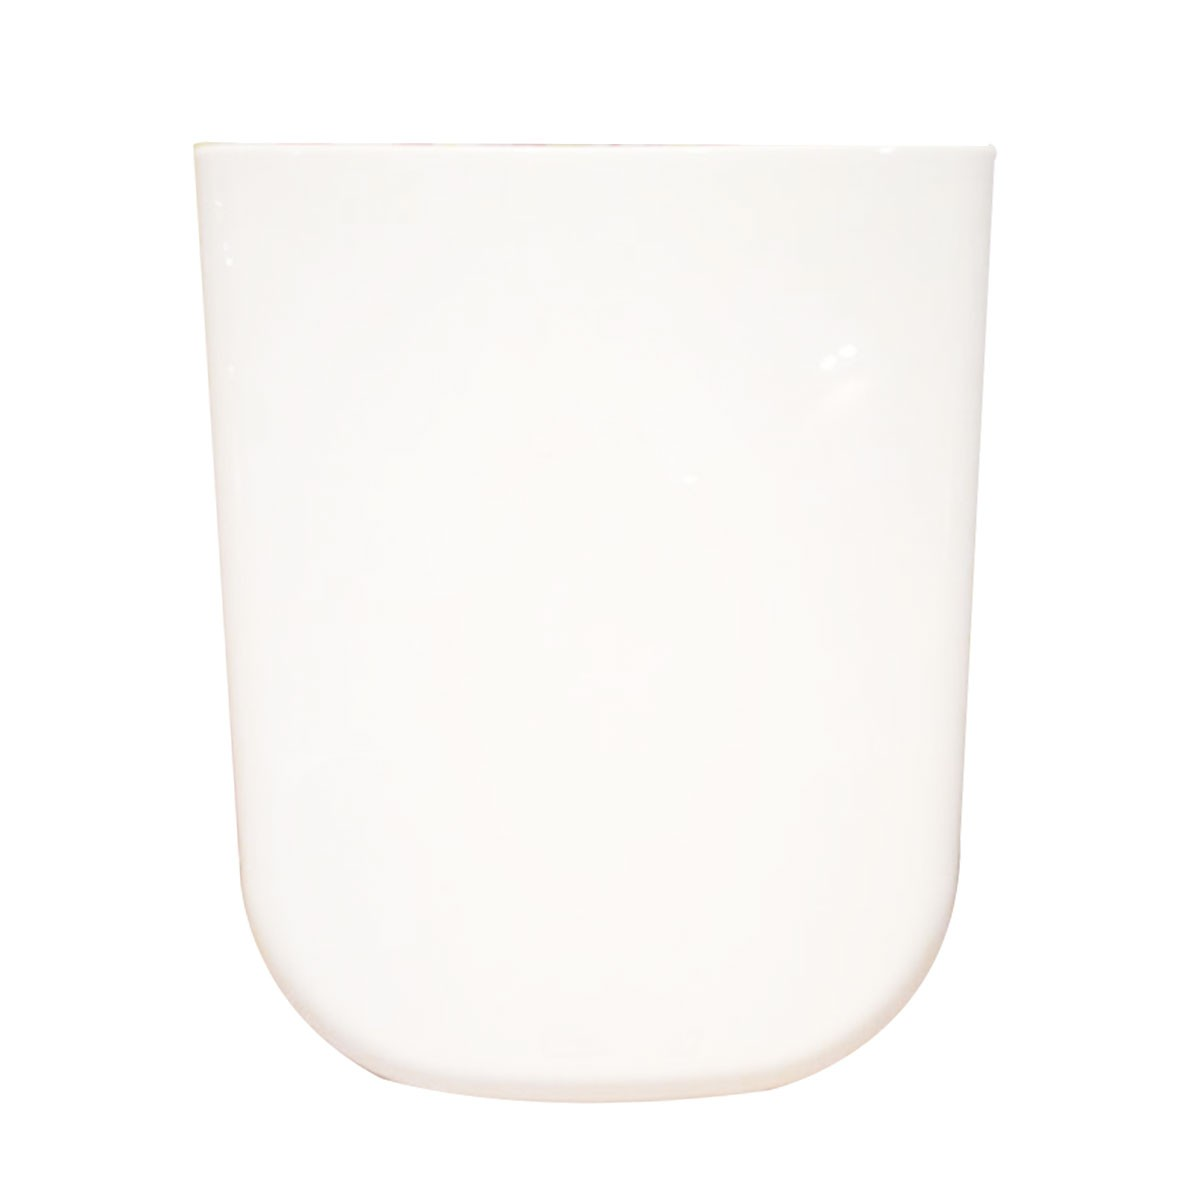 White Soft Close Toilet Seat with Cover (DK-CL-011)